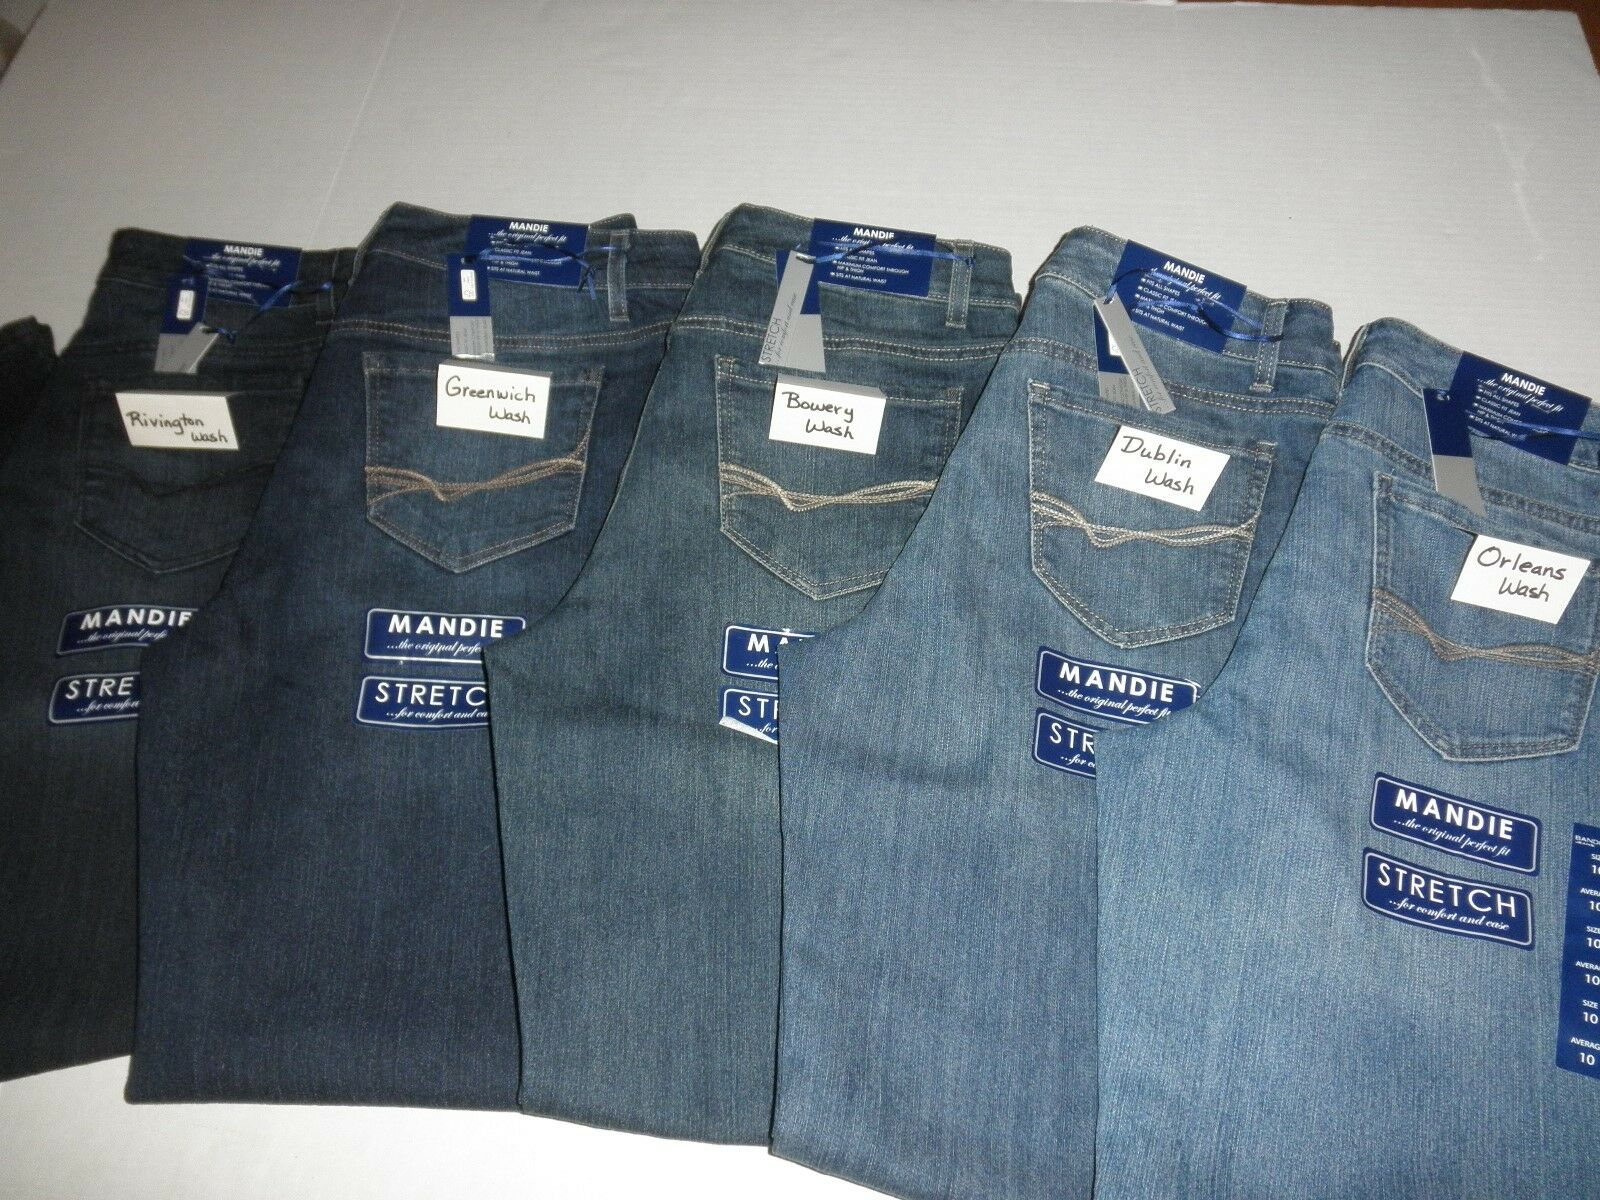 "NWT $48 Bandolino ""MANDIE"" Classic Fit STRETCH Jeans for Wom"